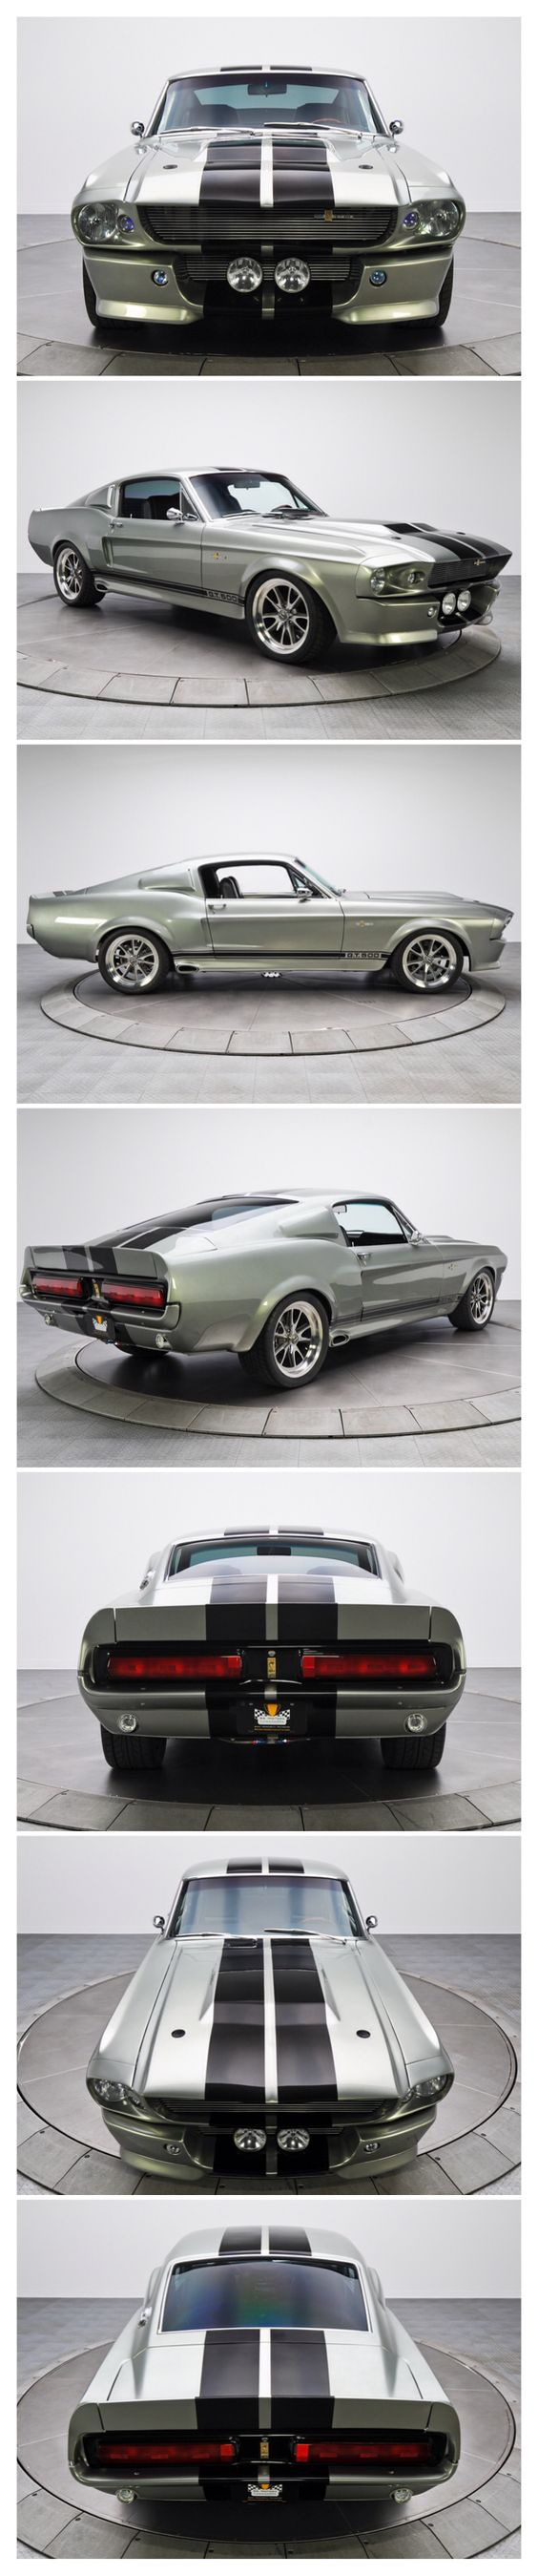 1967 Ford Eleanor GT                                                                                                                                                     Más